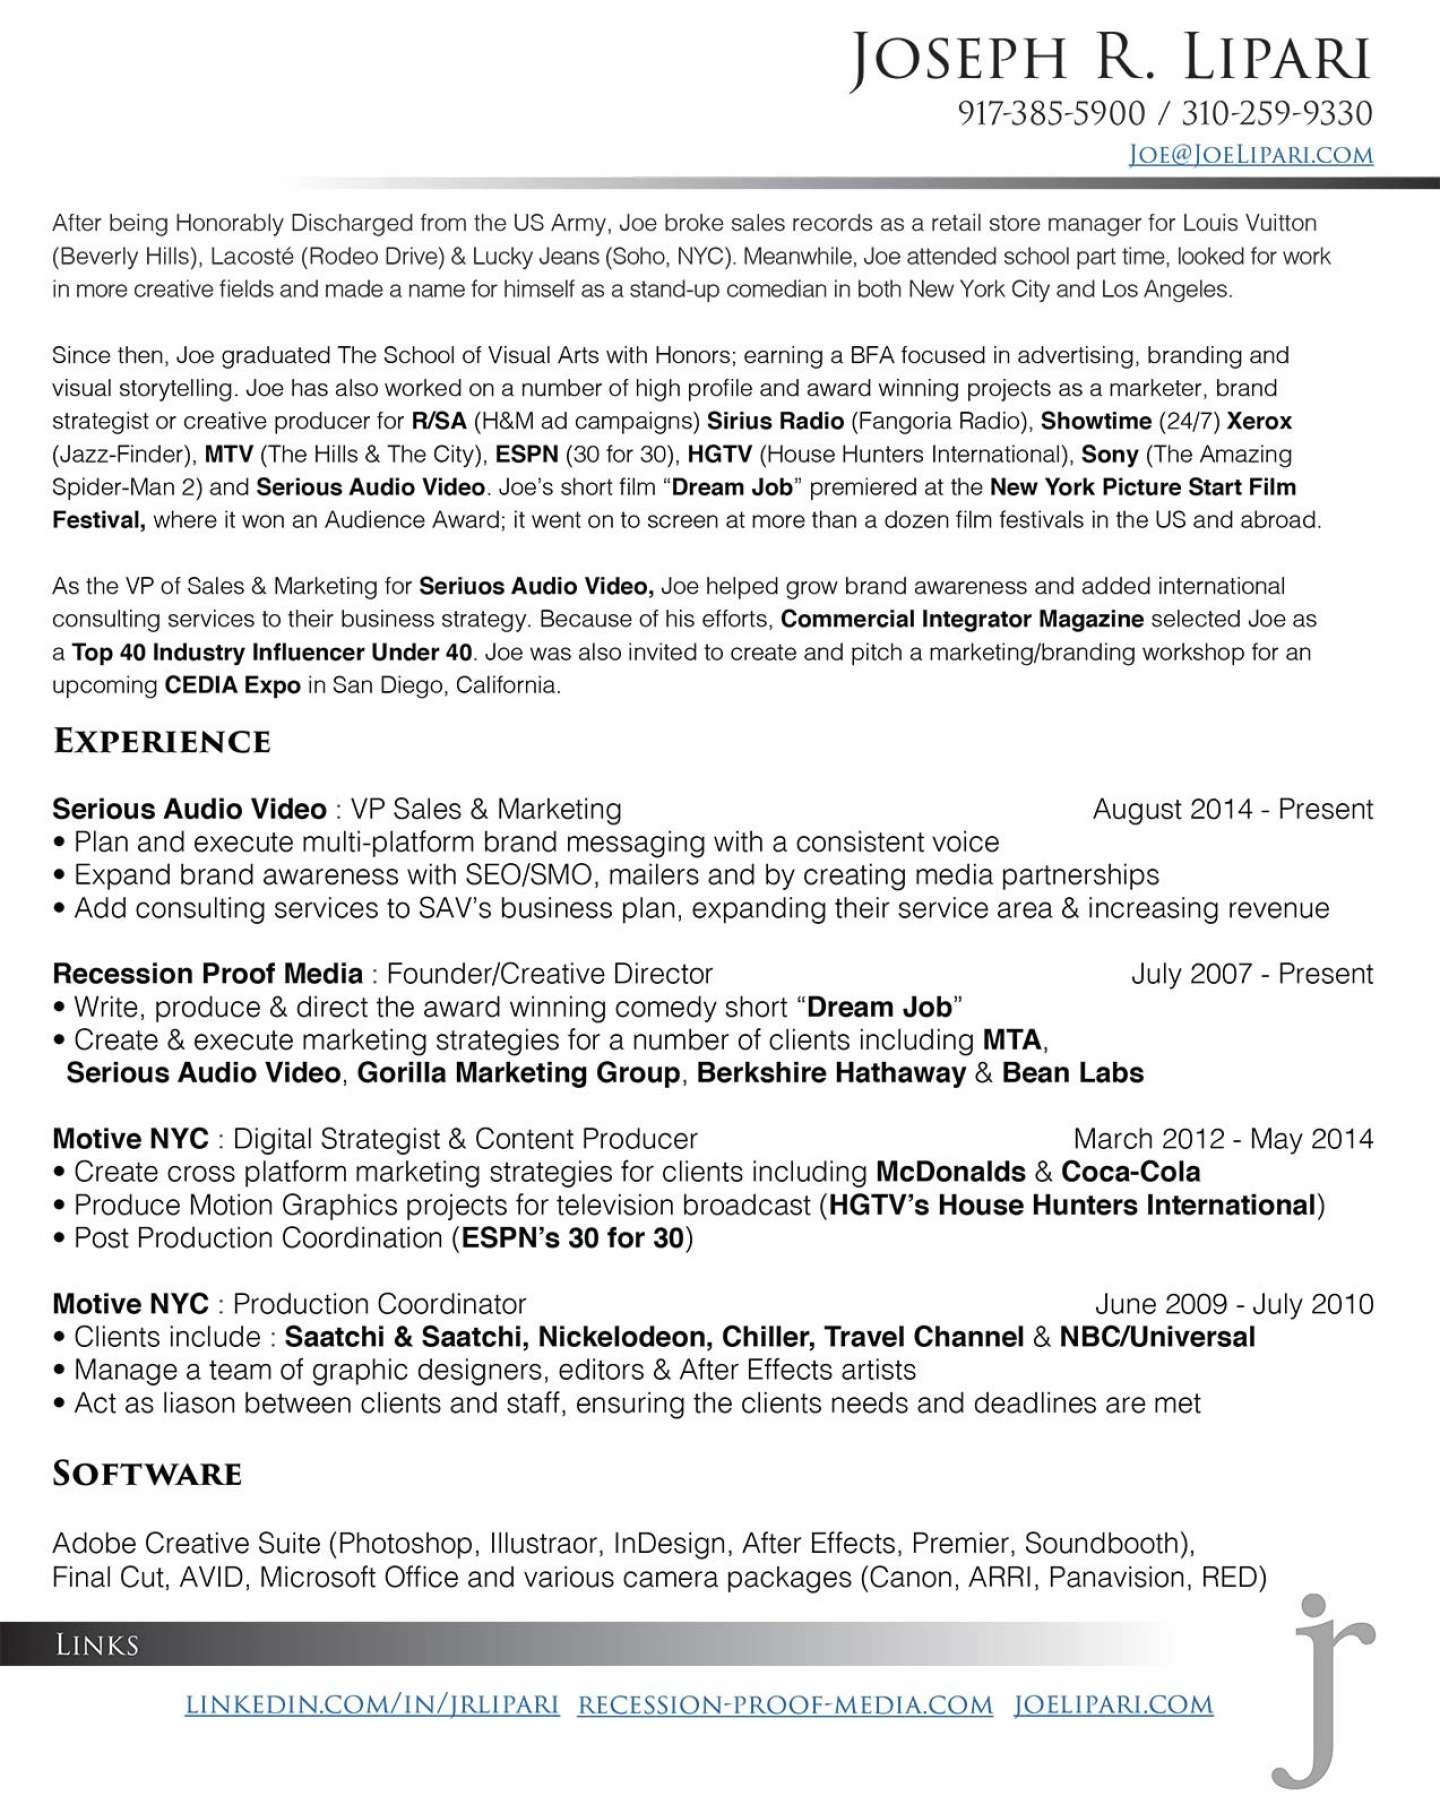 Resume Joseph Lipari My References Furnished Upon Request